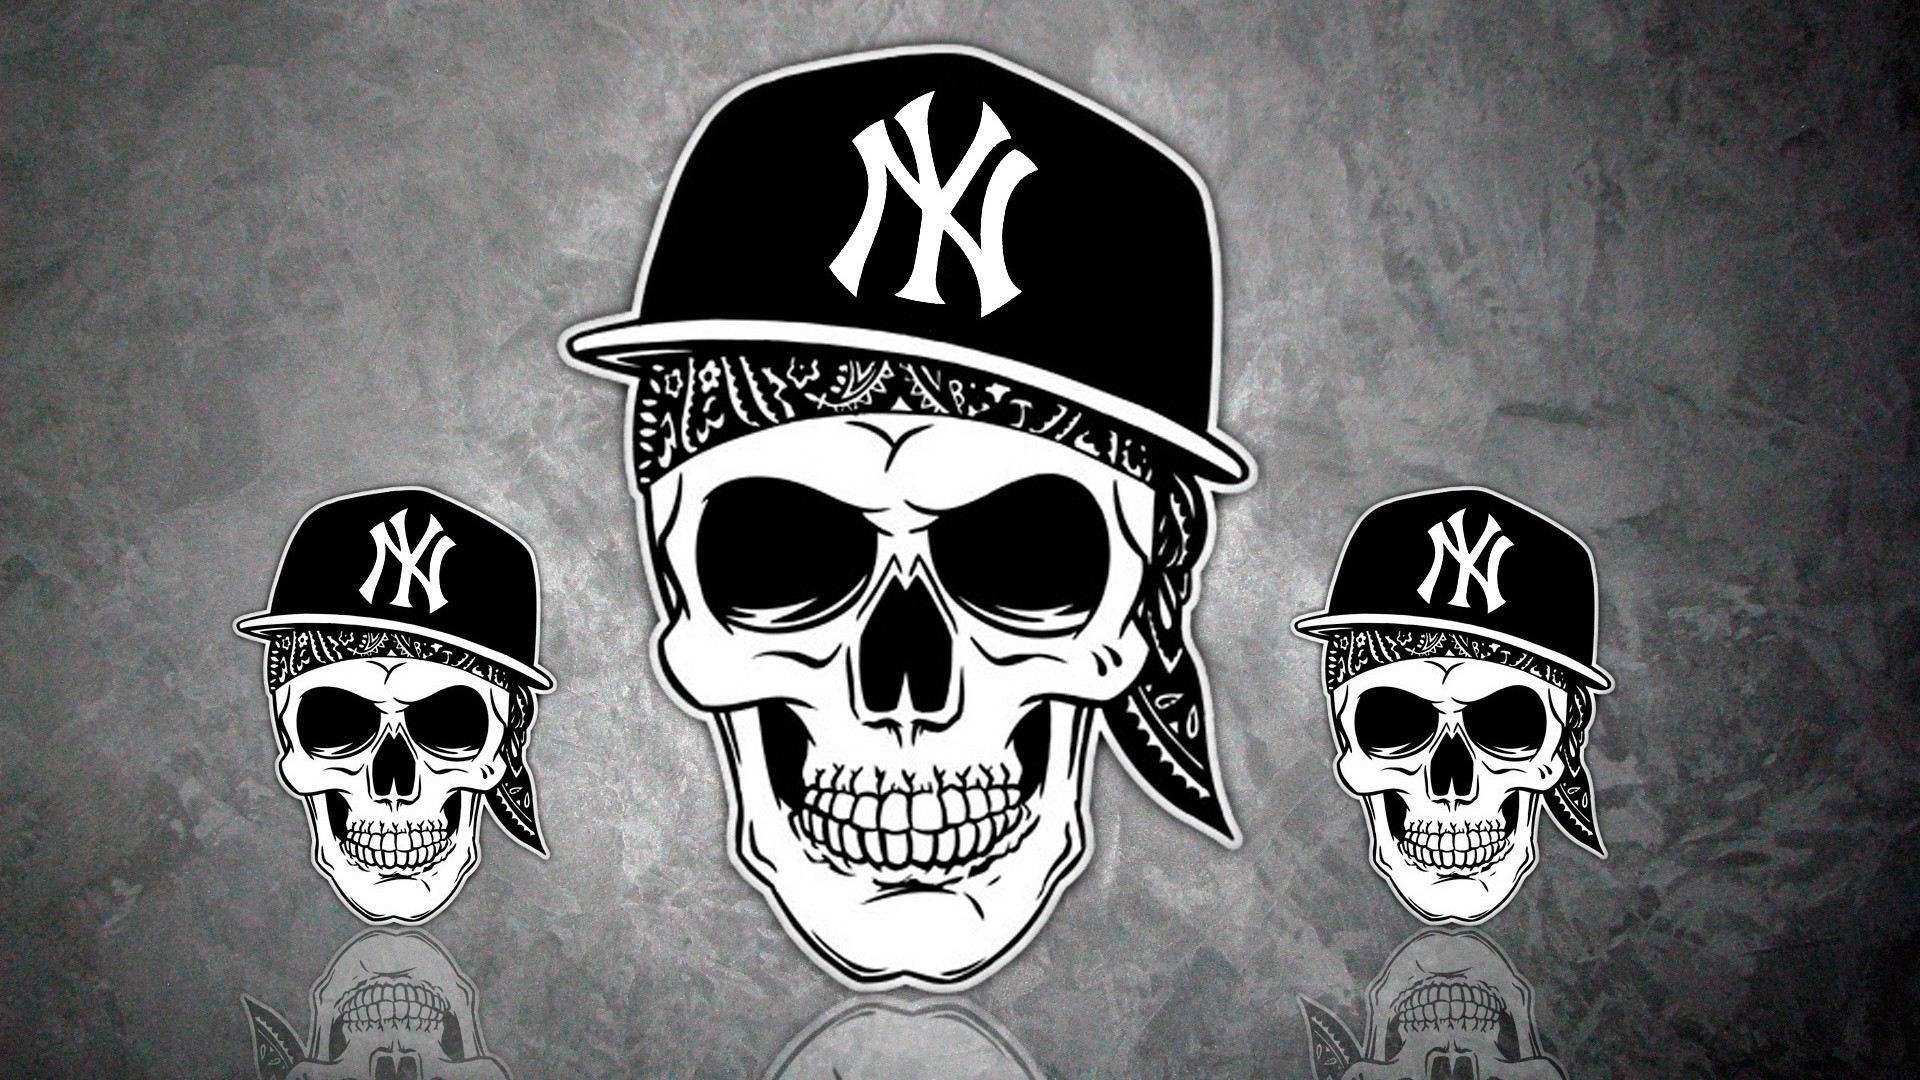 1920x1080 8. rap-wallpaper-HD8-600x338